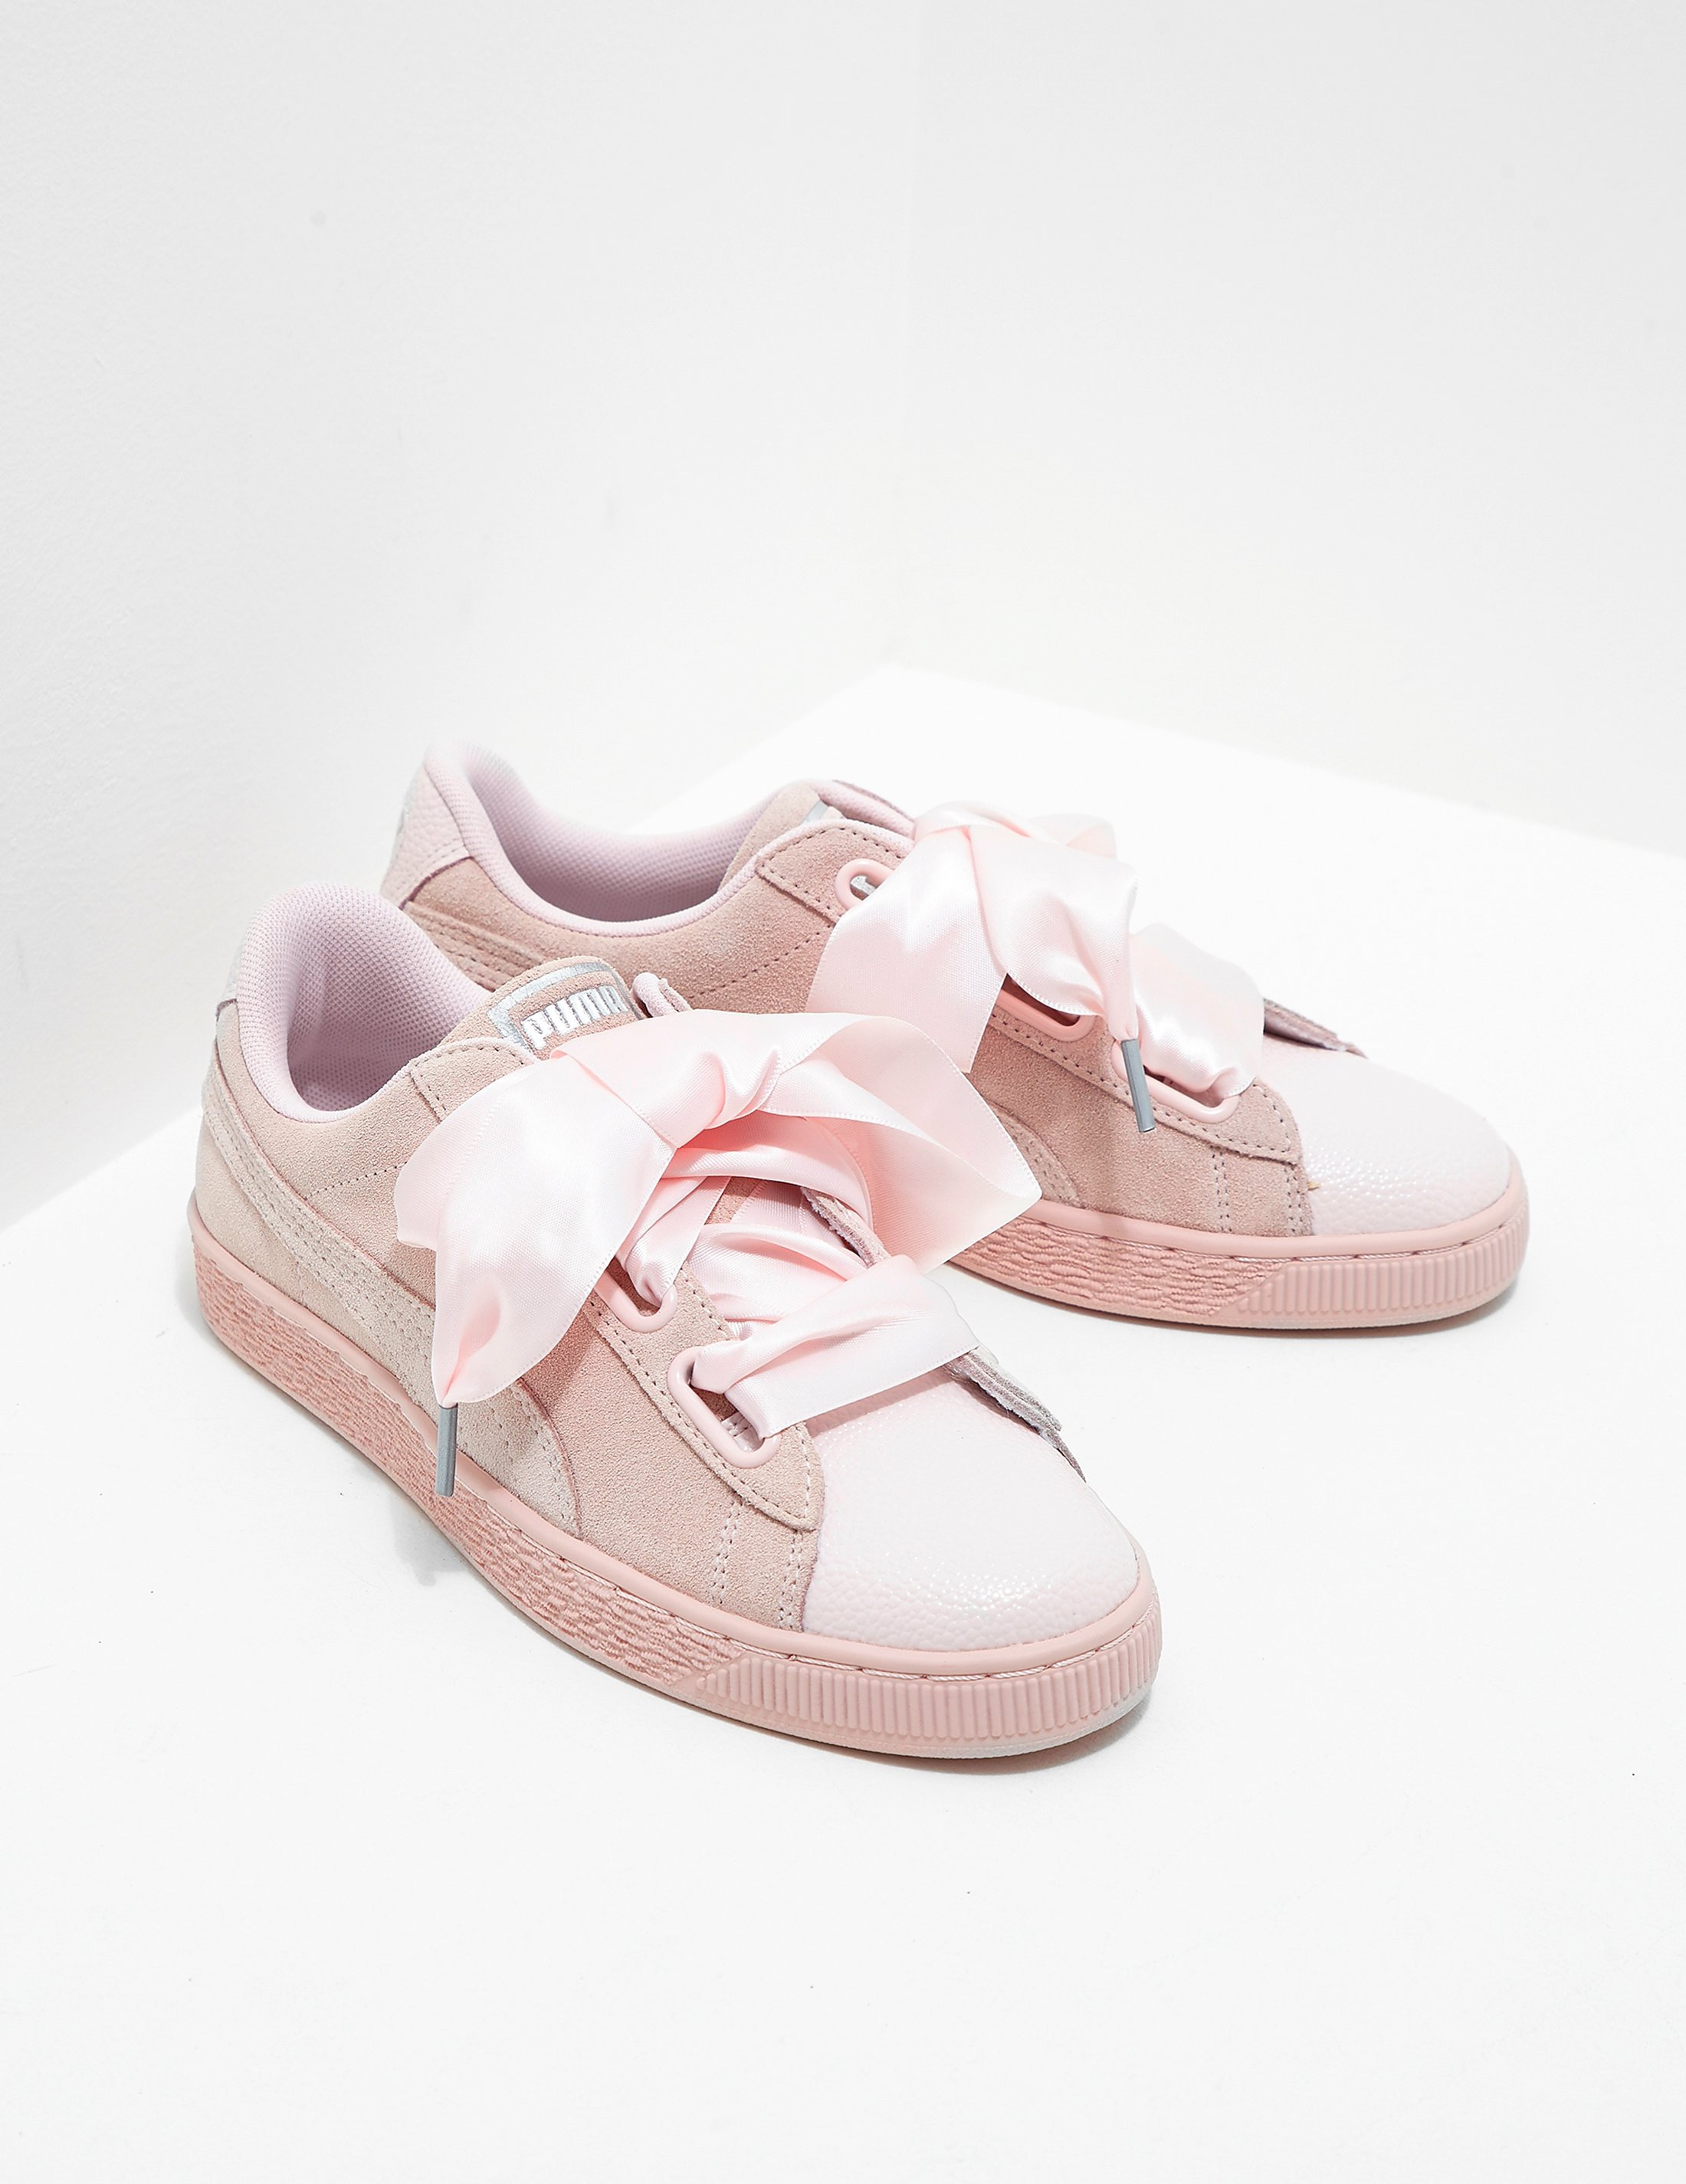 PUMA Suede Heart Bubble